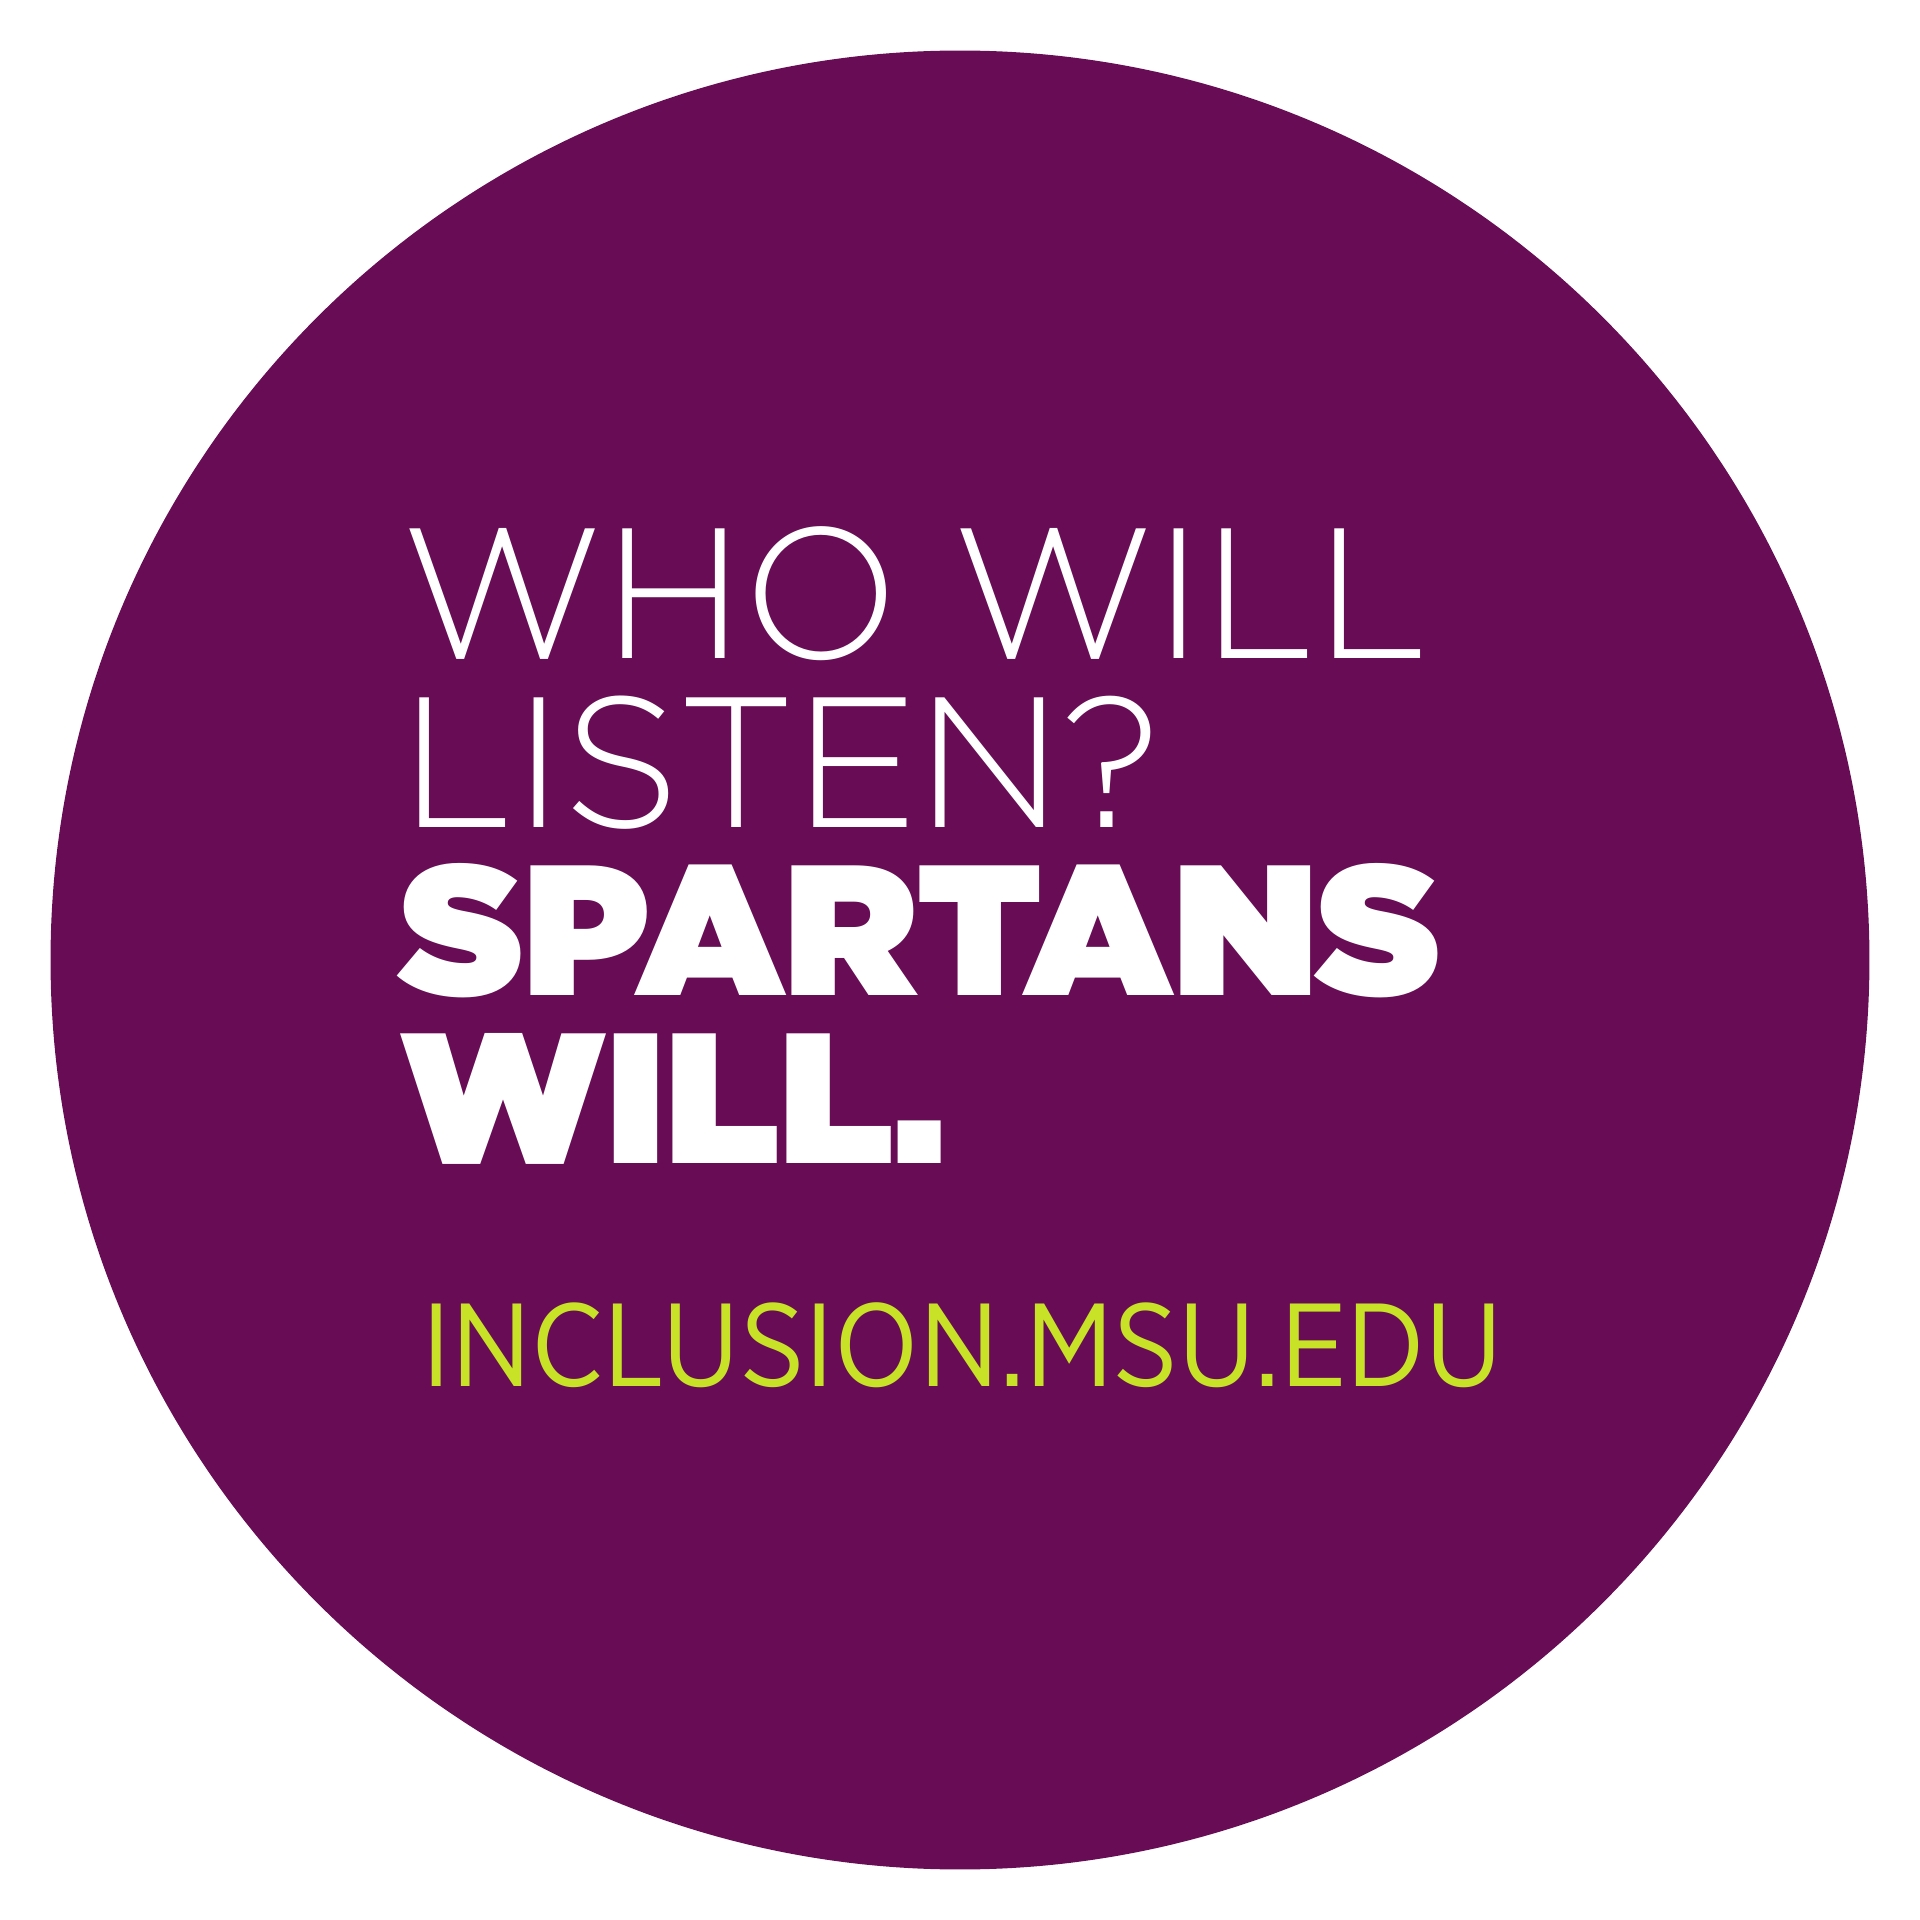 Who will listen? Spartans will.